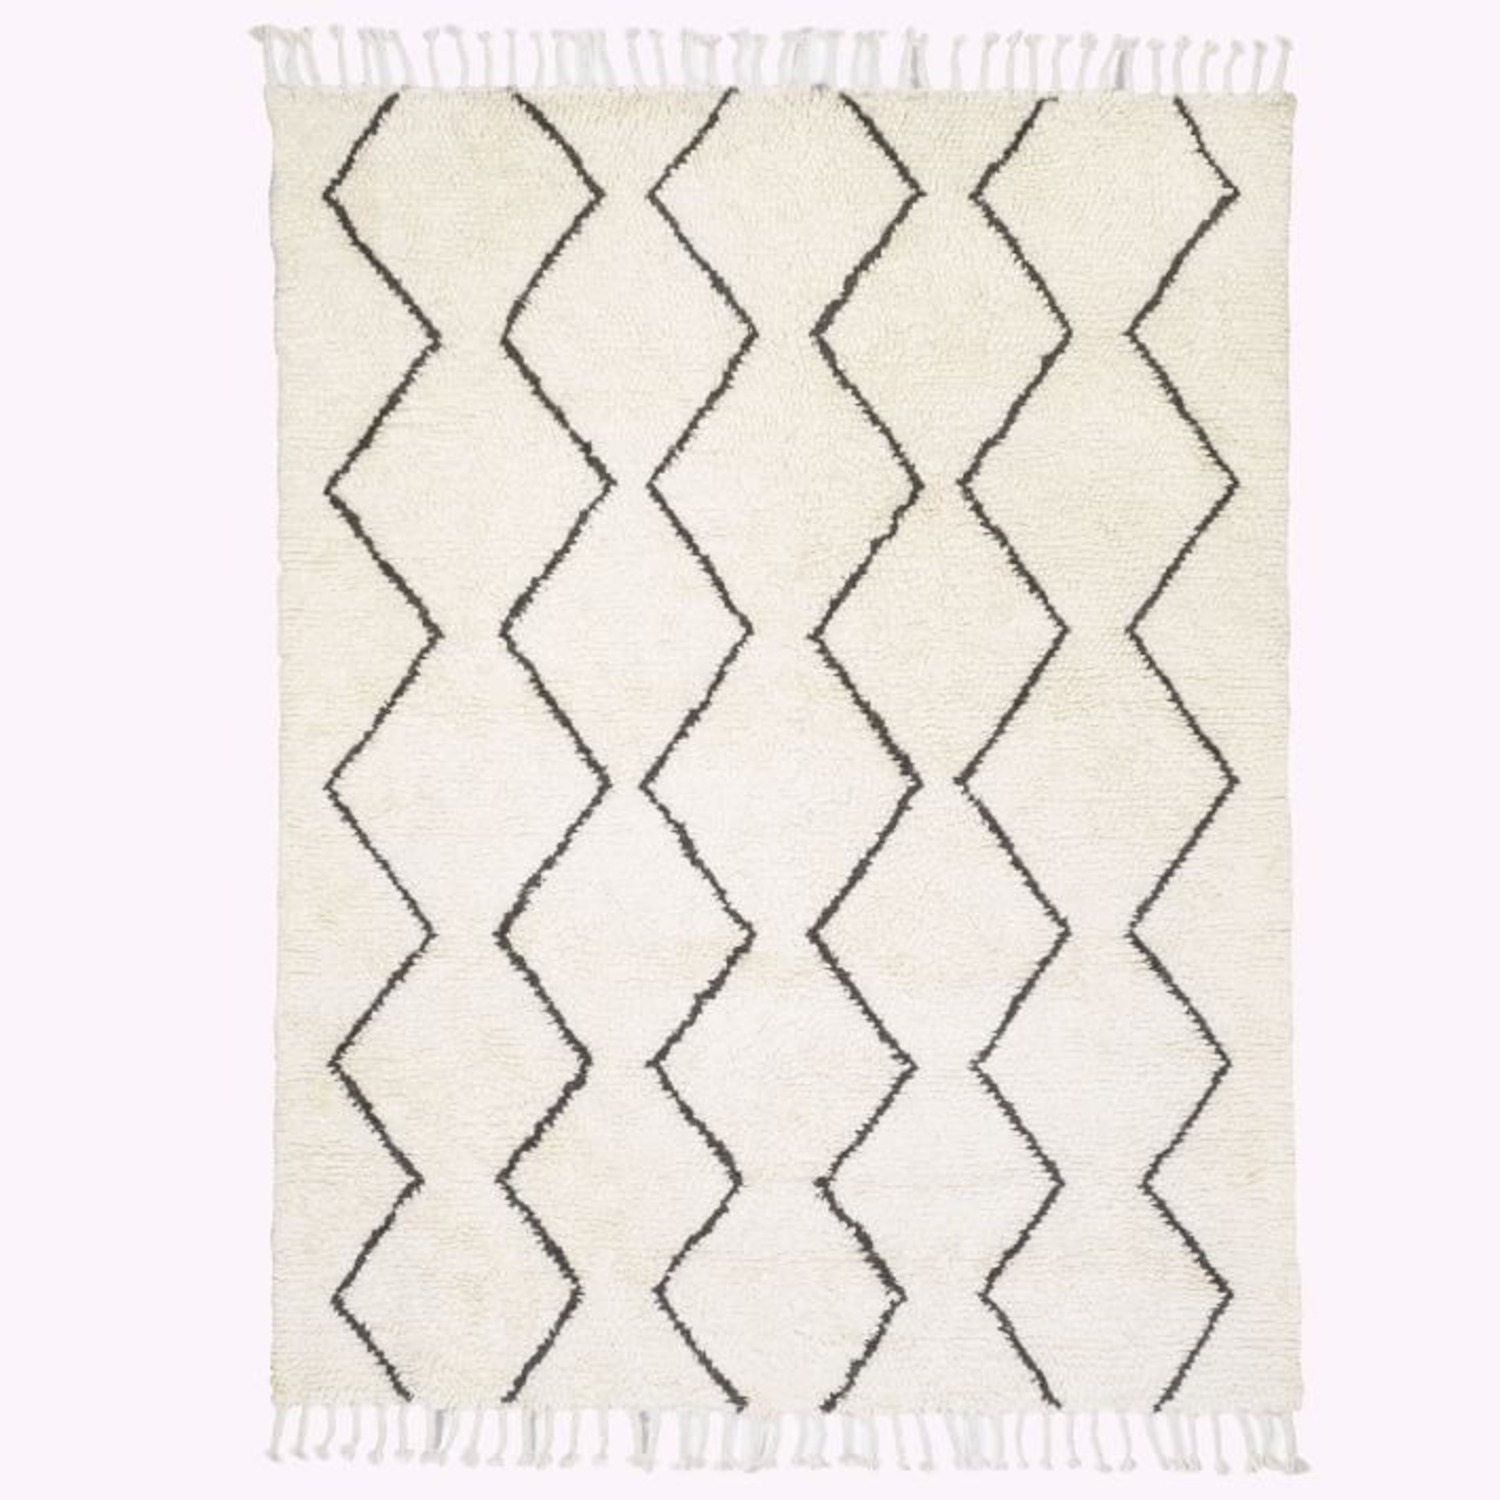 West Elm Wool Souk Rug 9x12 - image-2